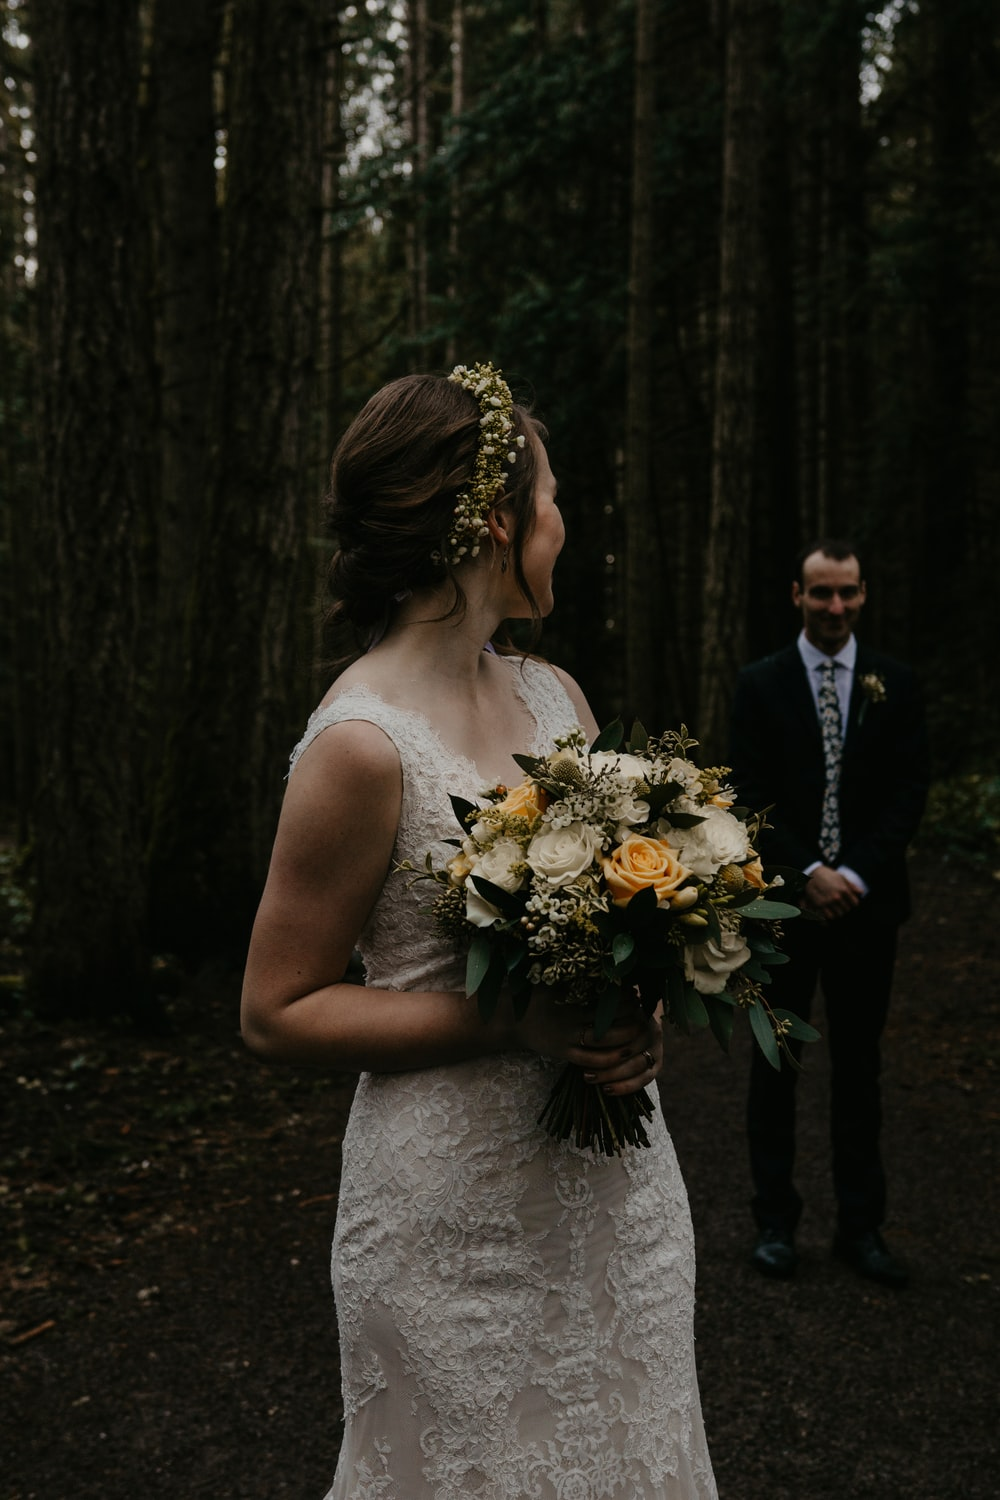 woman in white floral wedding dress holding bouquet of flowers